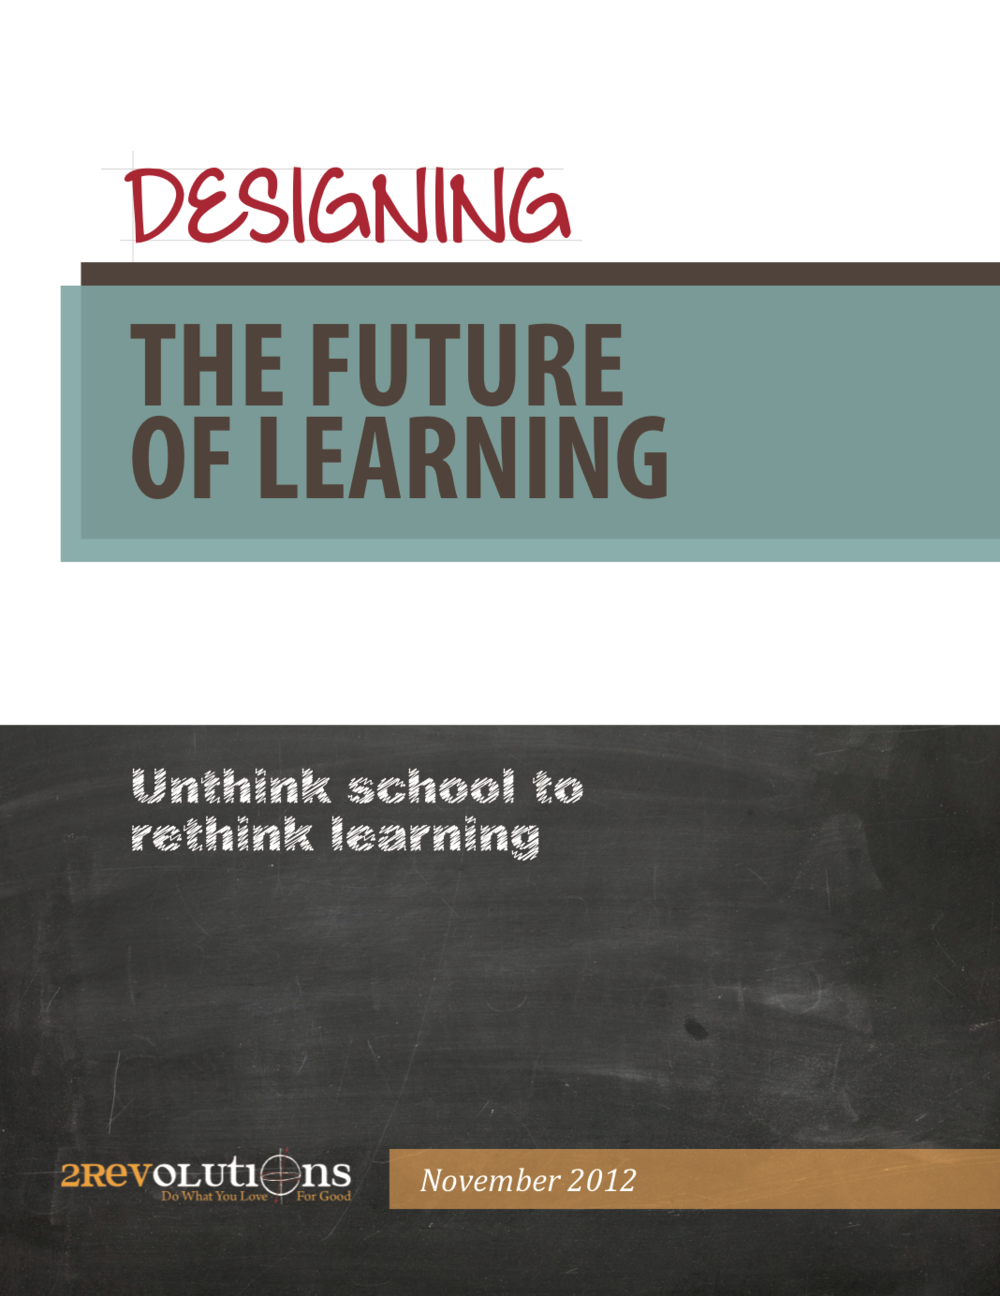 designing the Future of Learning, november 2012